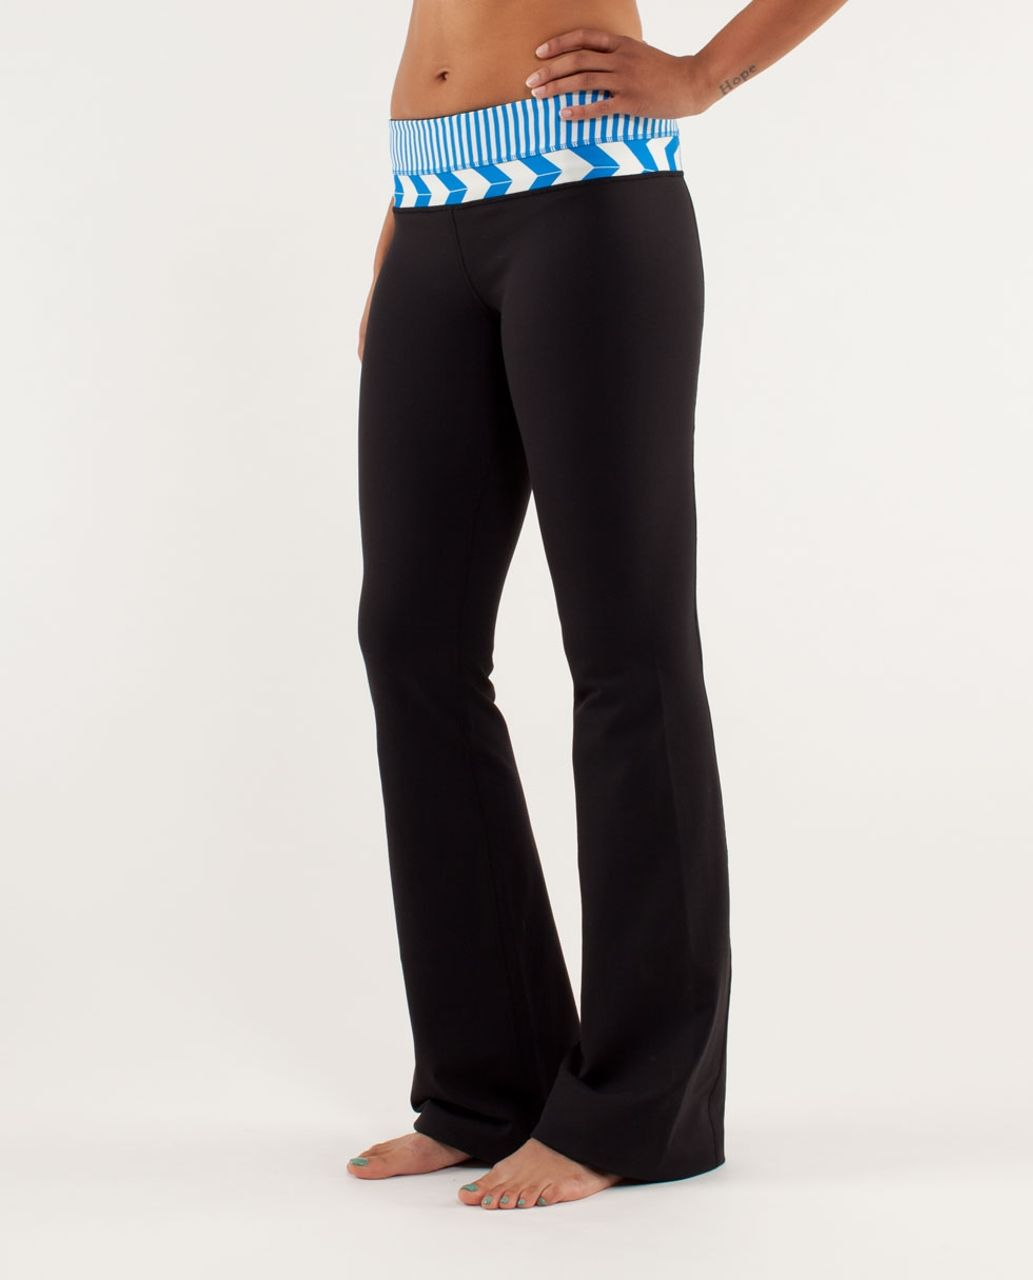 Lululemon Groove Pant *Slim (Regular) - Black / Classic Stripe Polar Cream Beaming Blue / Arrow Chevron Heathered Polar Cream Blu